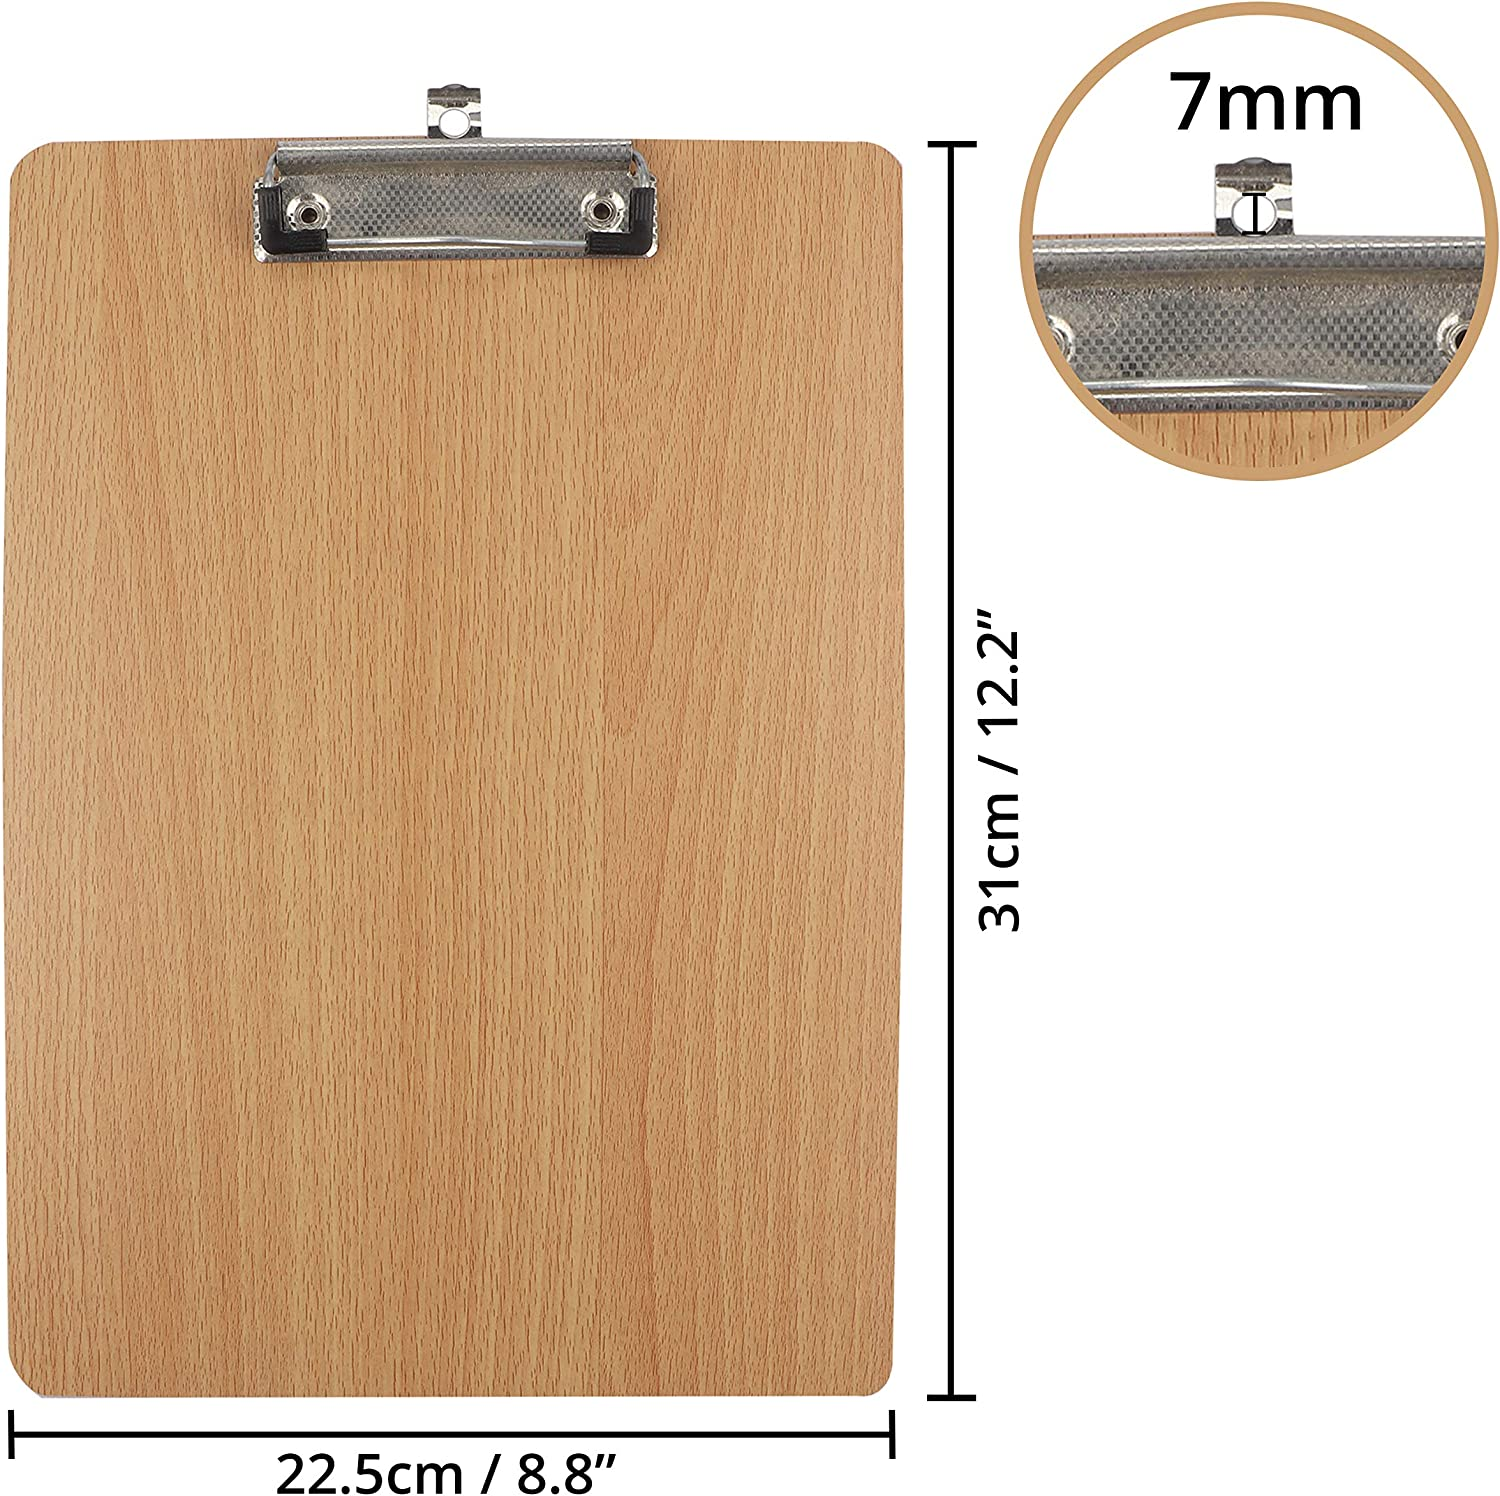 - A4 Oak Clipboards with Sturdy Spring-Loaded Grip and Hanging Hole Wooden Clipboards Durable Wooden Clip Boards Ideal for Holding Menu Office and School Uses 6 Pack